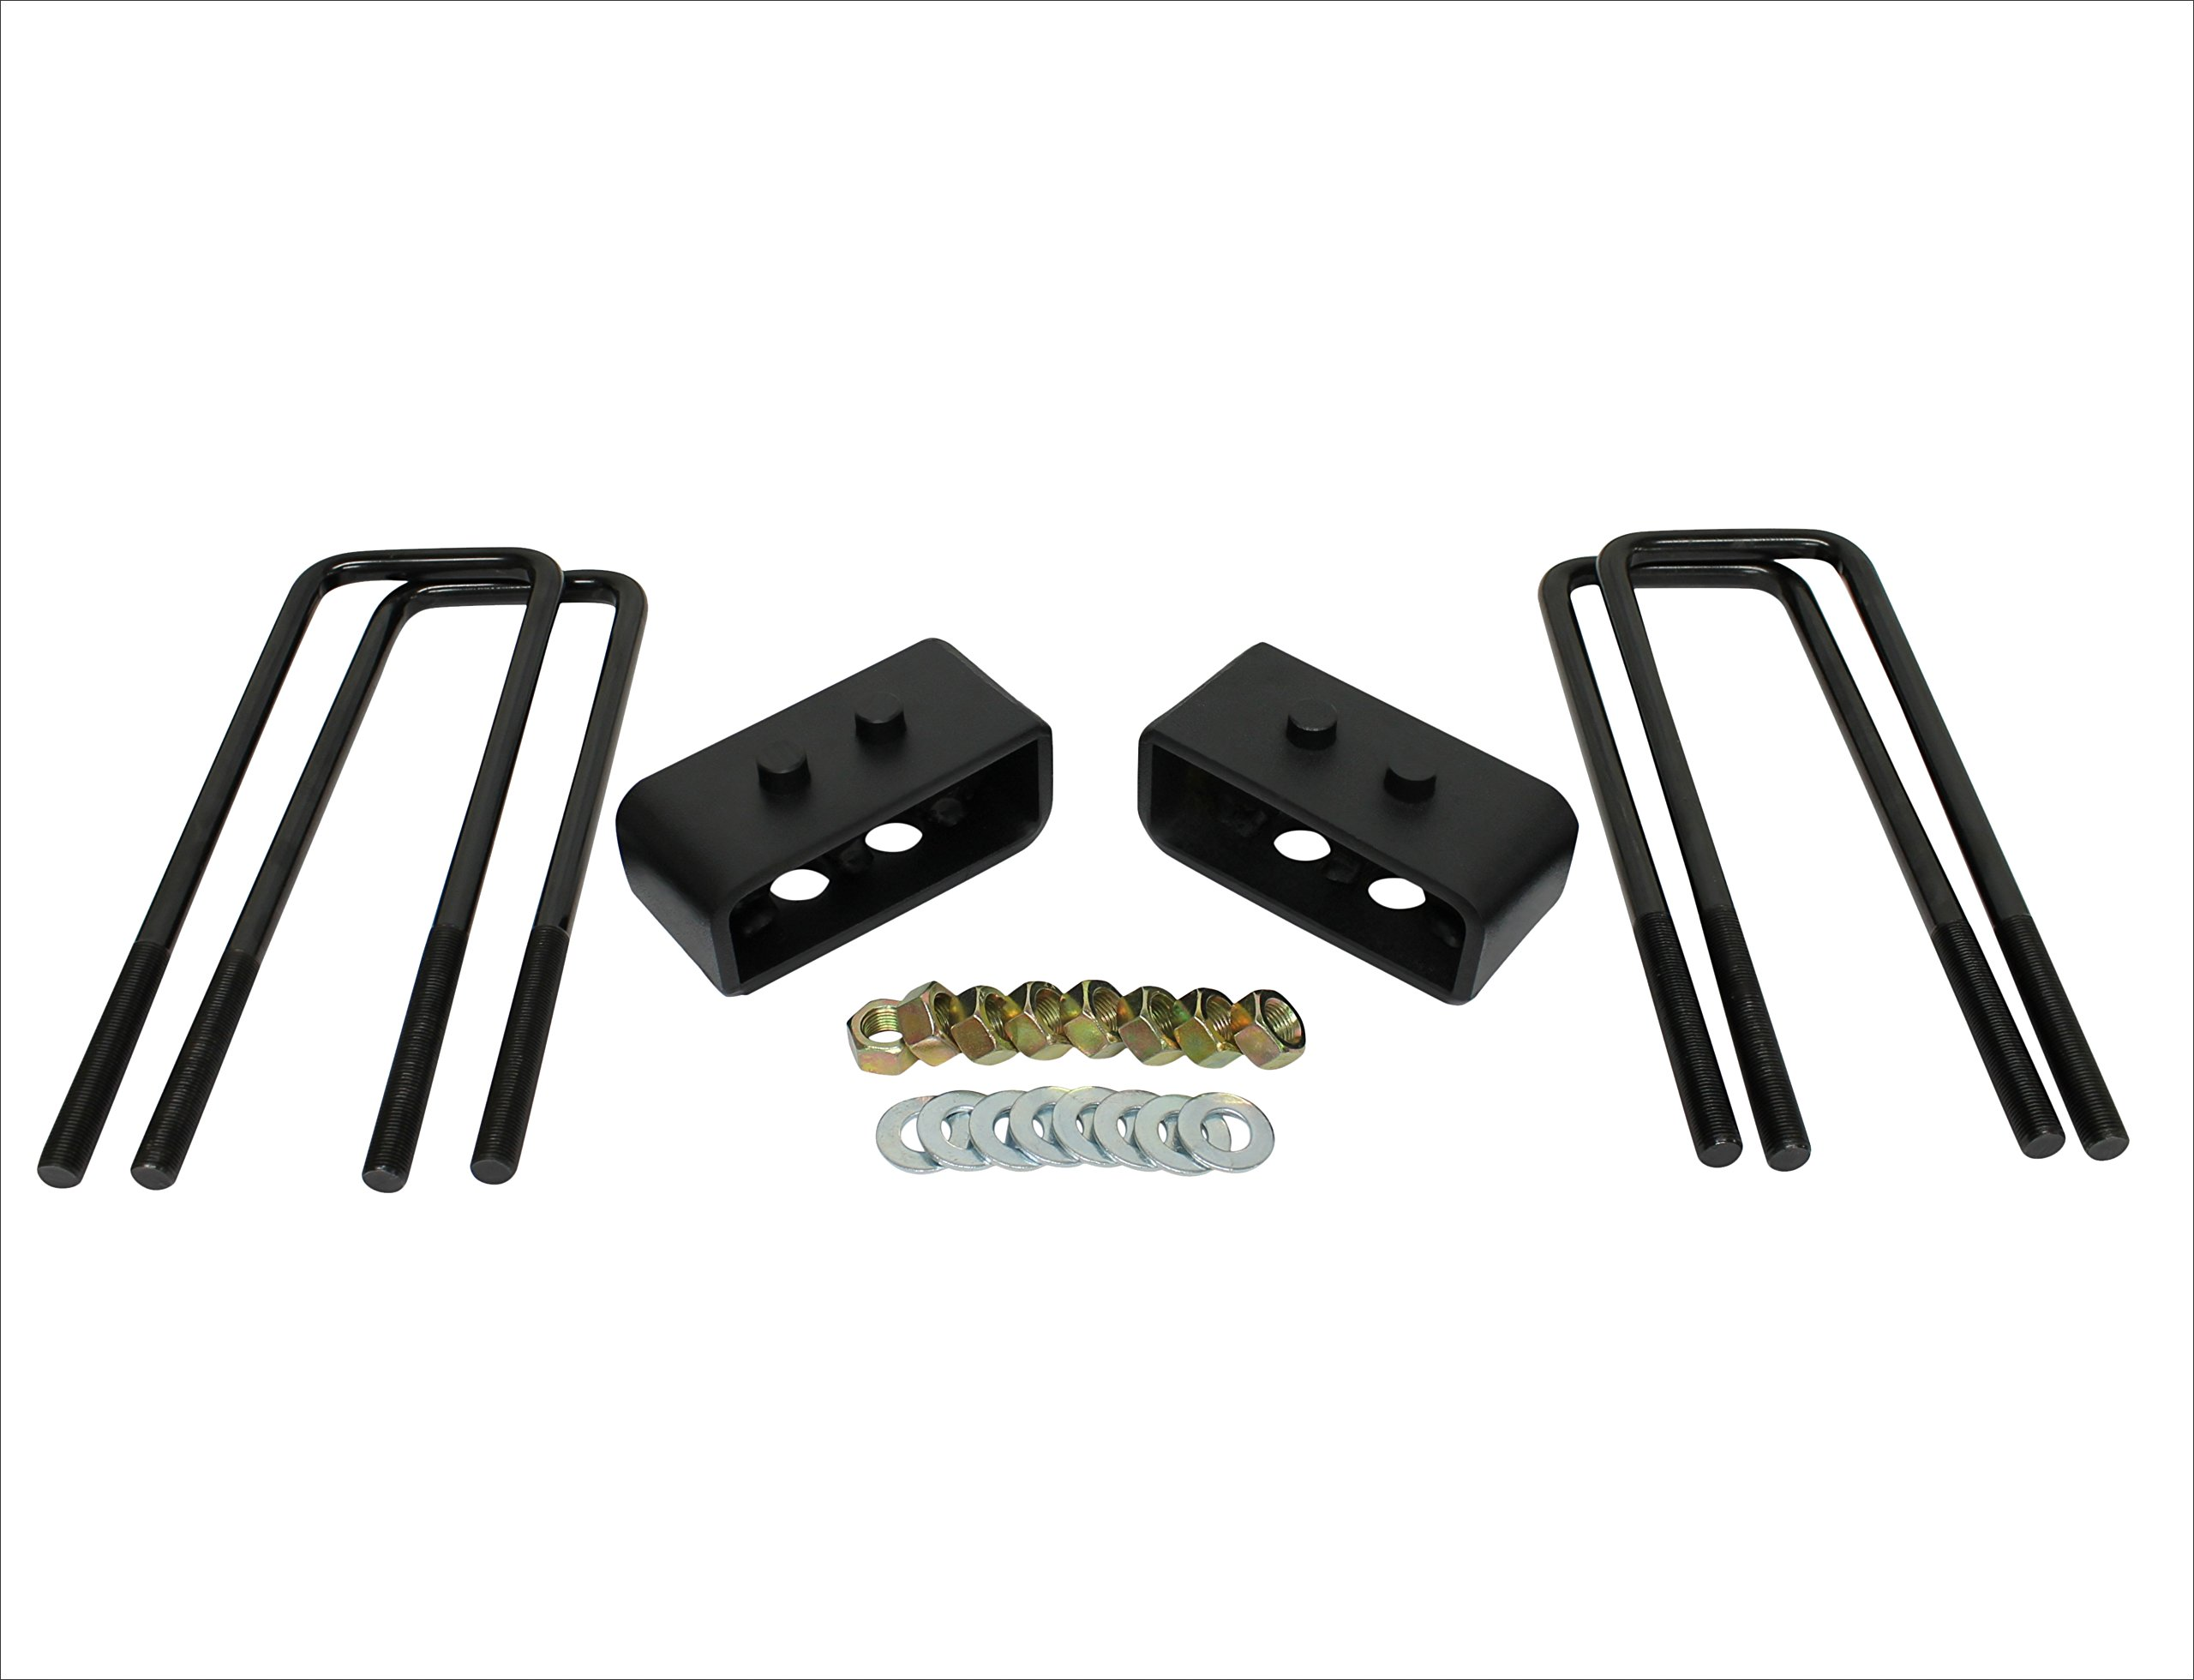 MotoFab Lifts F150-2R 2'' Rear lift kit for 2004-2017 FORD F150 2WD 4WD by MotoFab Lifts